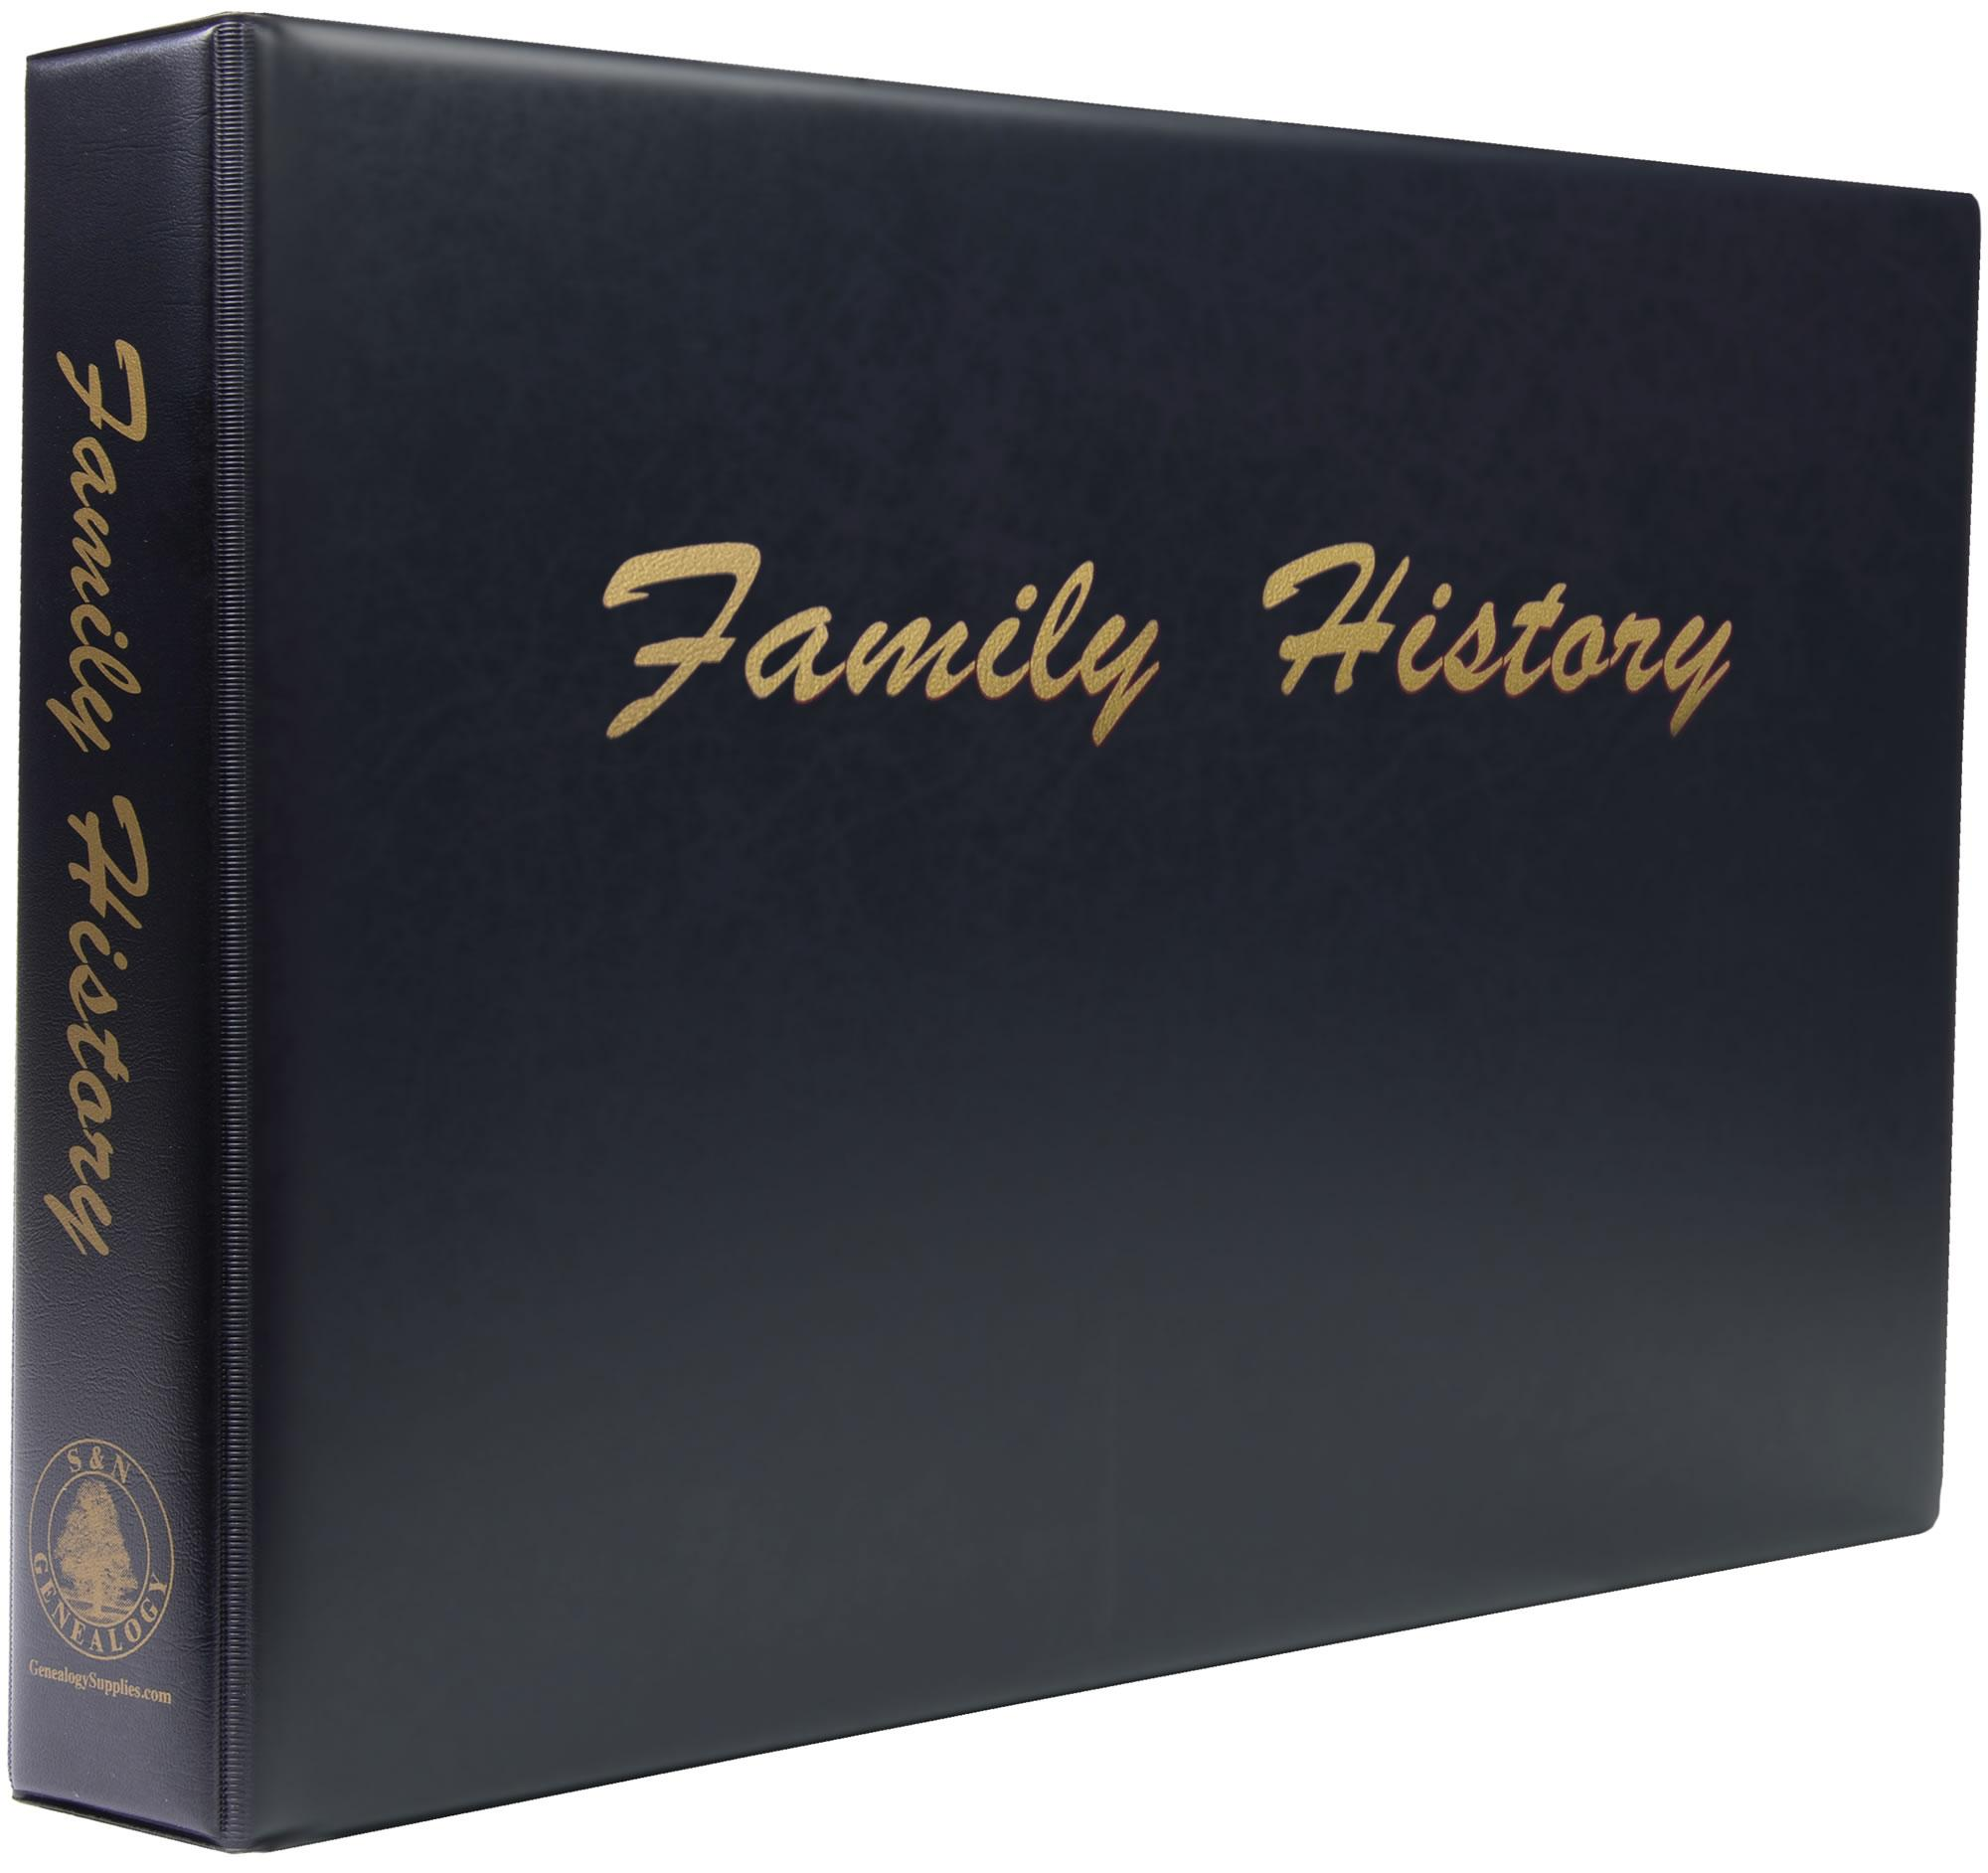 A3 Luxury Black Family History Binder   (Heavy Item)